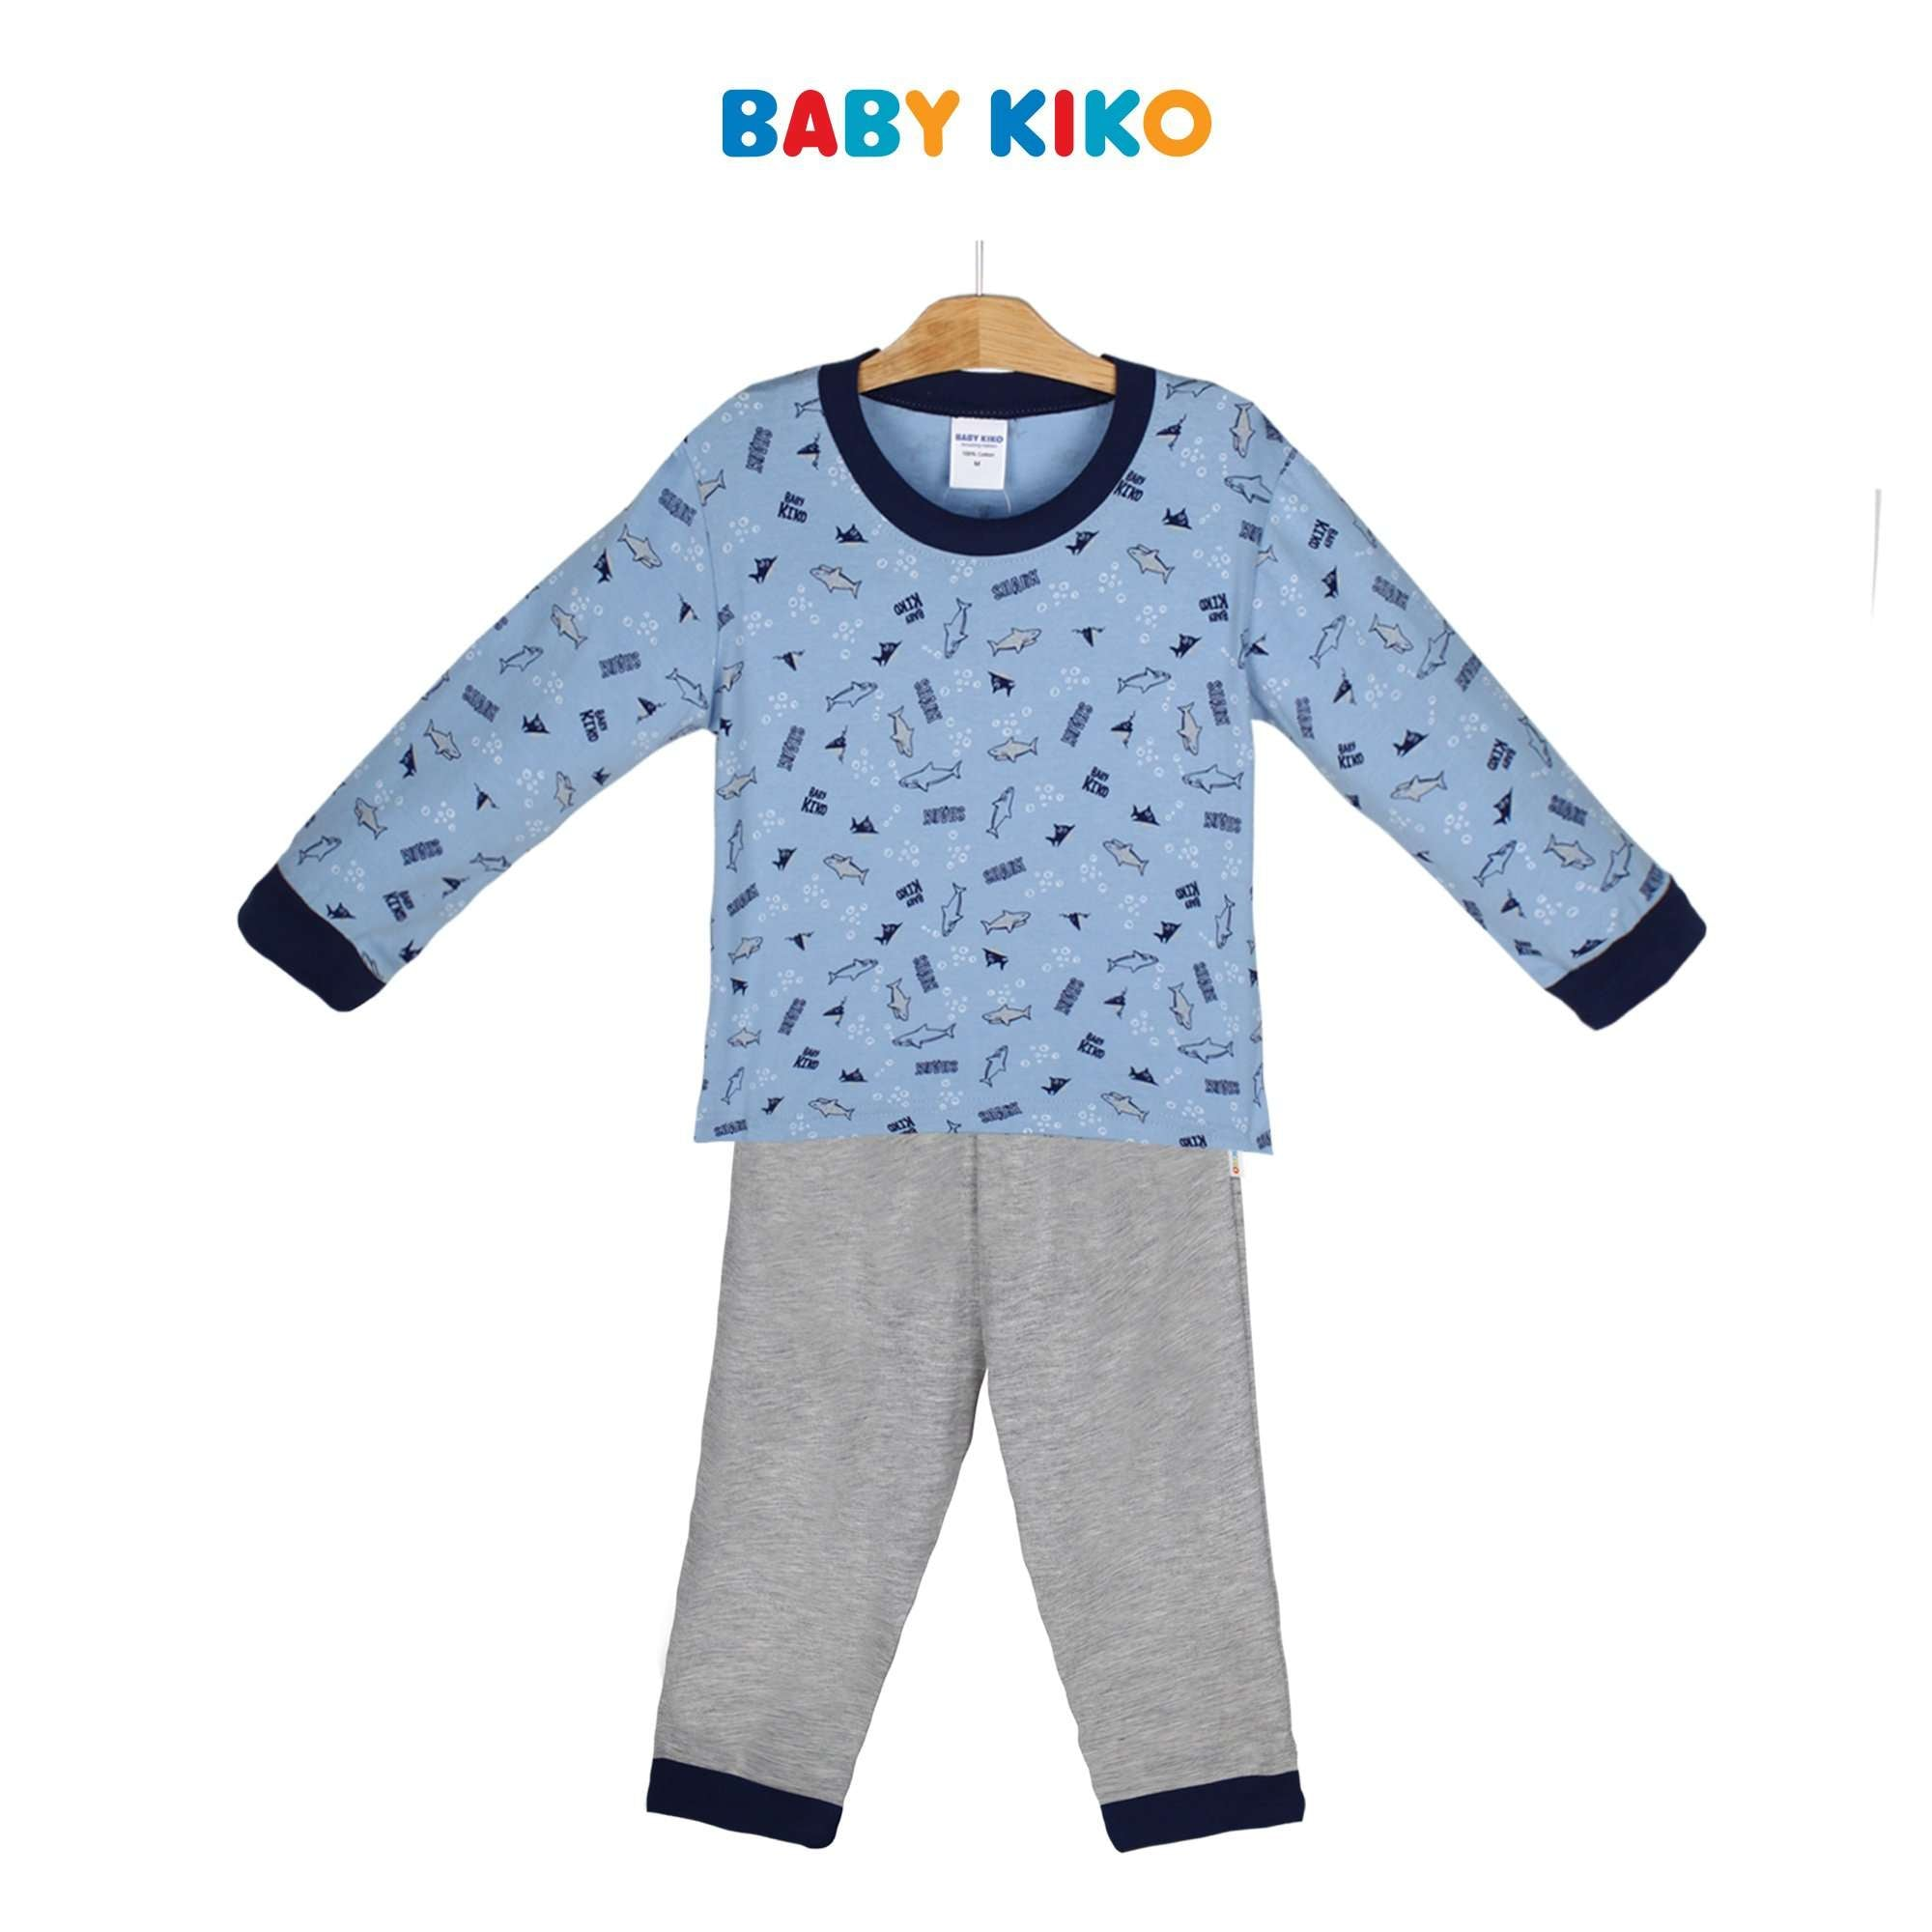 Baby KIKO Toddler Boy Long Sleeve Long Pants Suit 325157-431 : Buy Baby KIKO online at CMG.MY